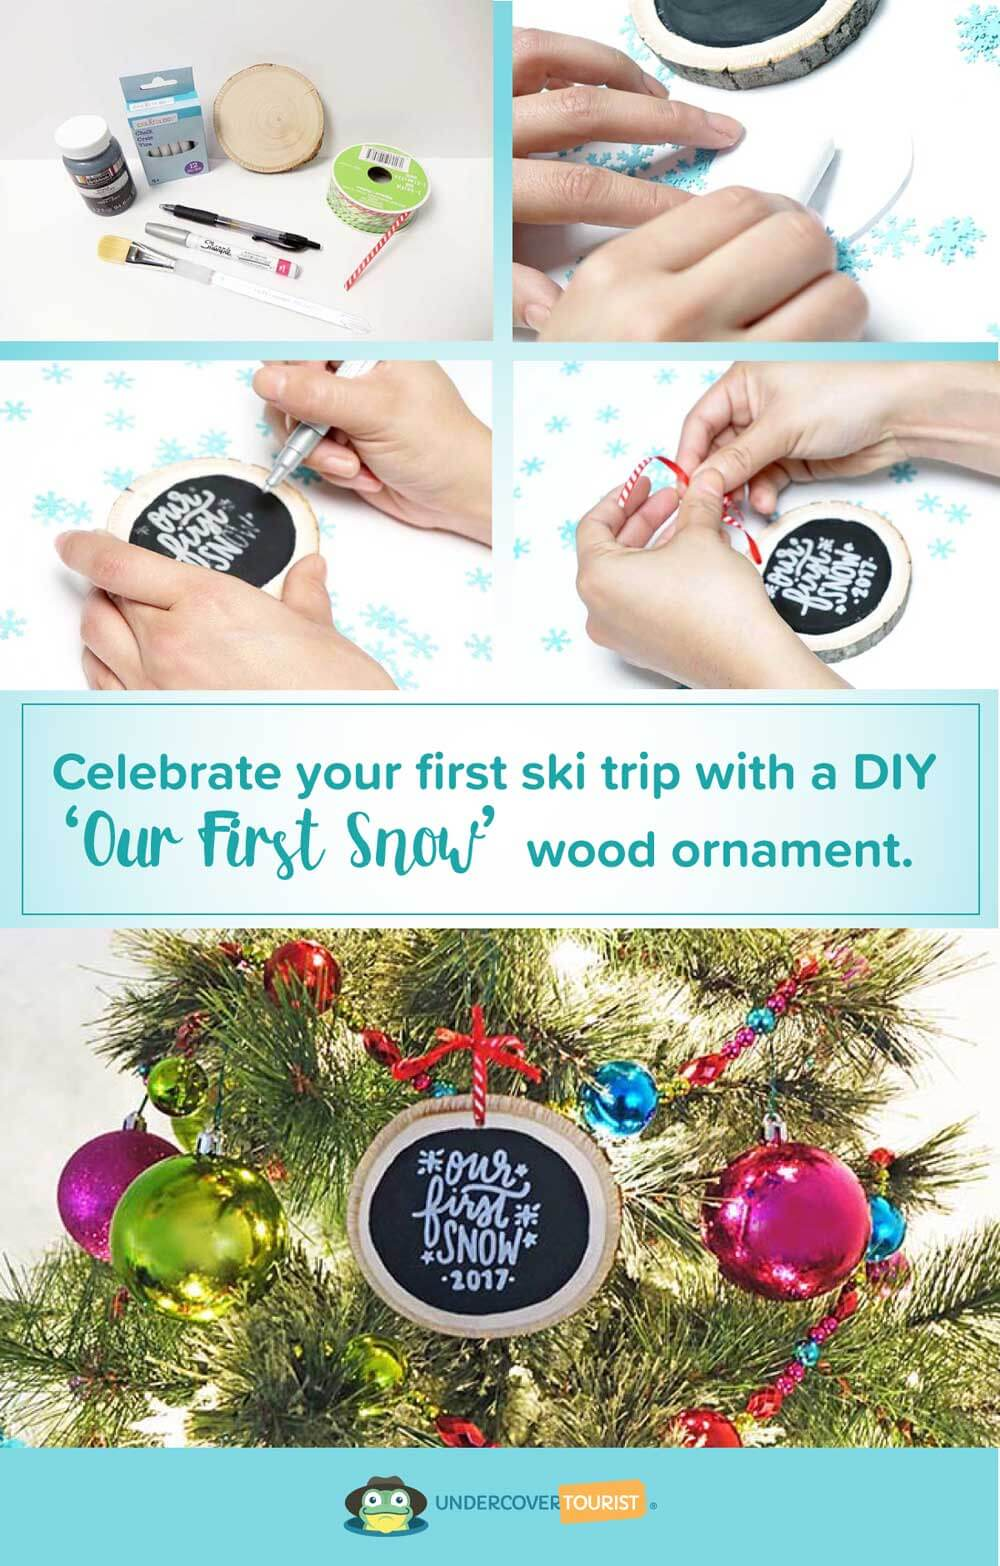 DIY Our First Snow Wood Ornament